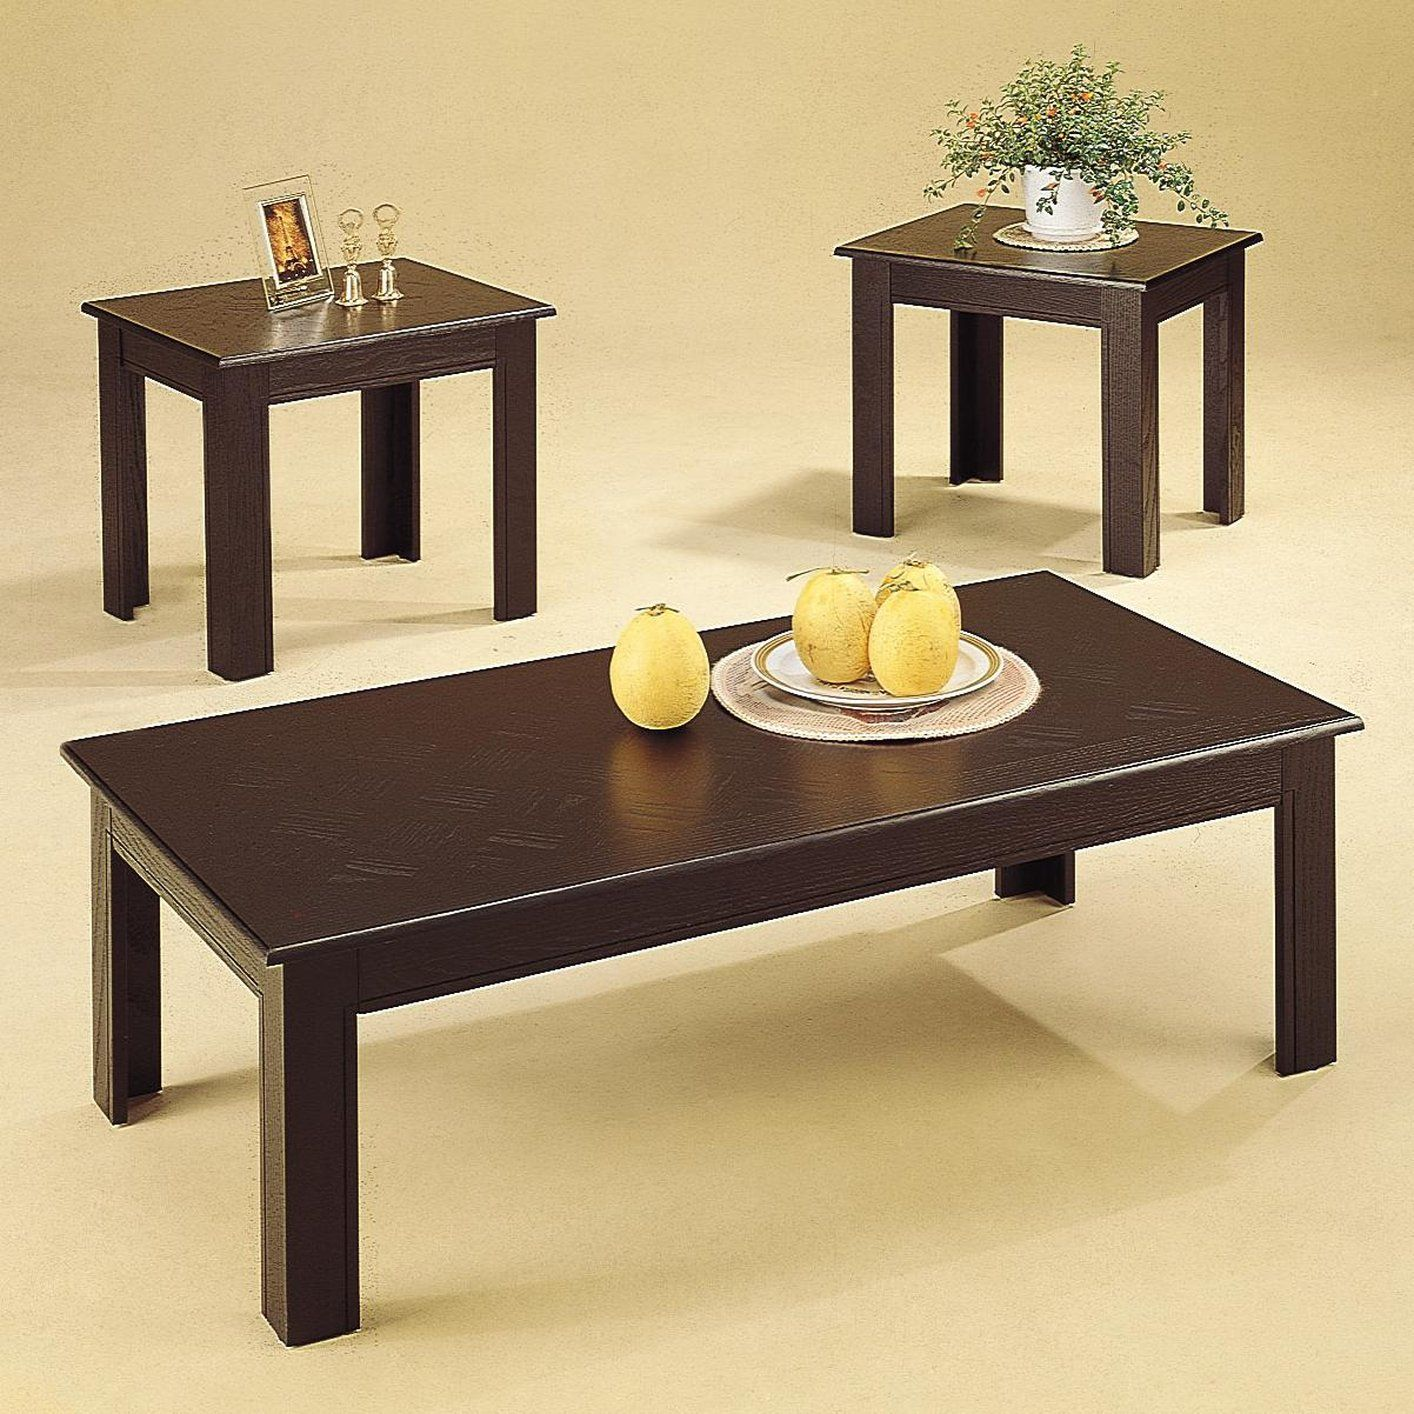 Large Square Black Coffee Table Collection Full Size Of Coffee Table Black Wood Coffee Table Dark Wood Coffee Table Coffee Table Wood Square Wood Coffee Table